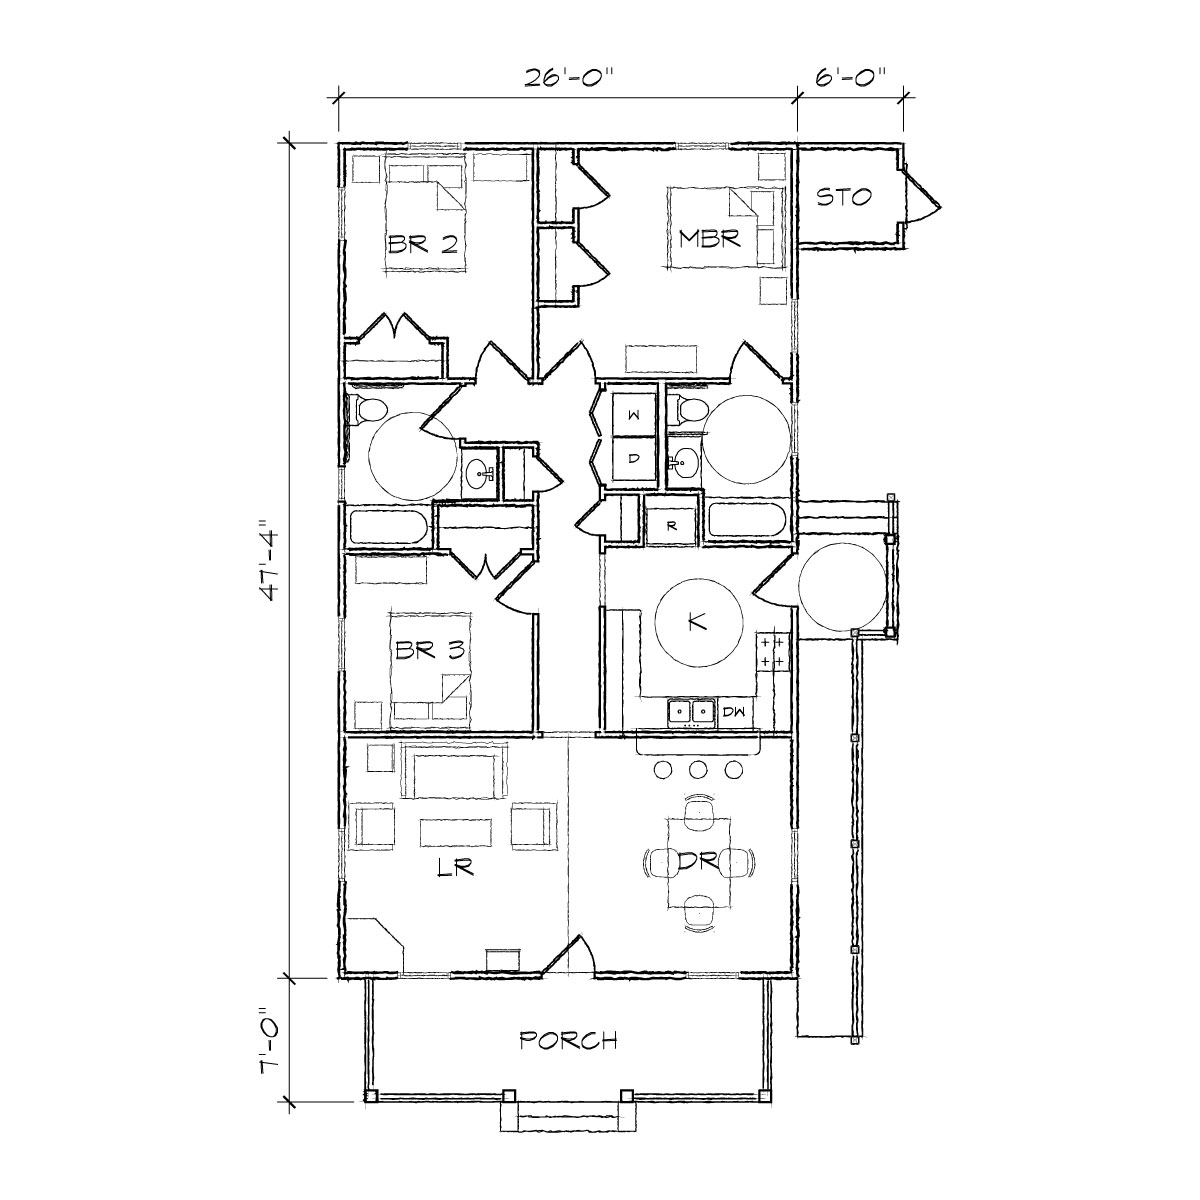 2 bedroom bungalow plans bungalow floor plan floor plan for Free 3 bedroom bungalow house plans